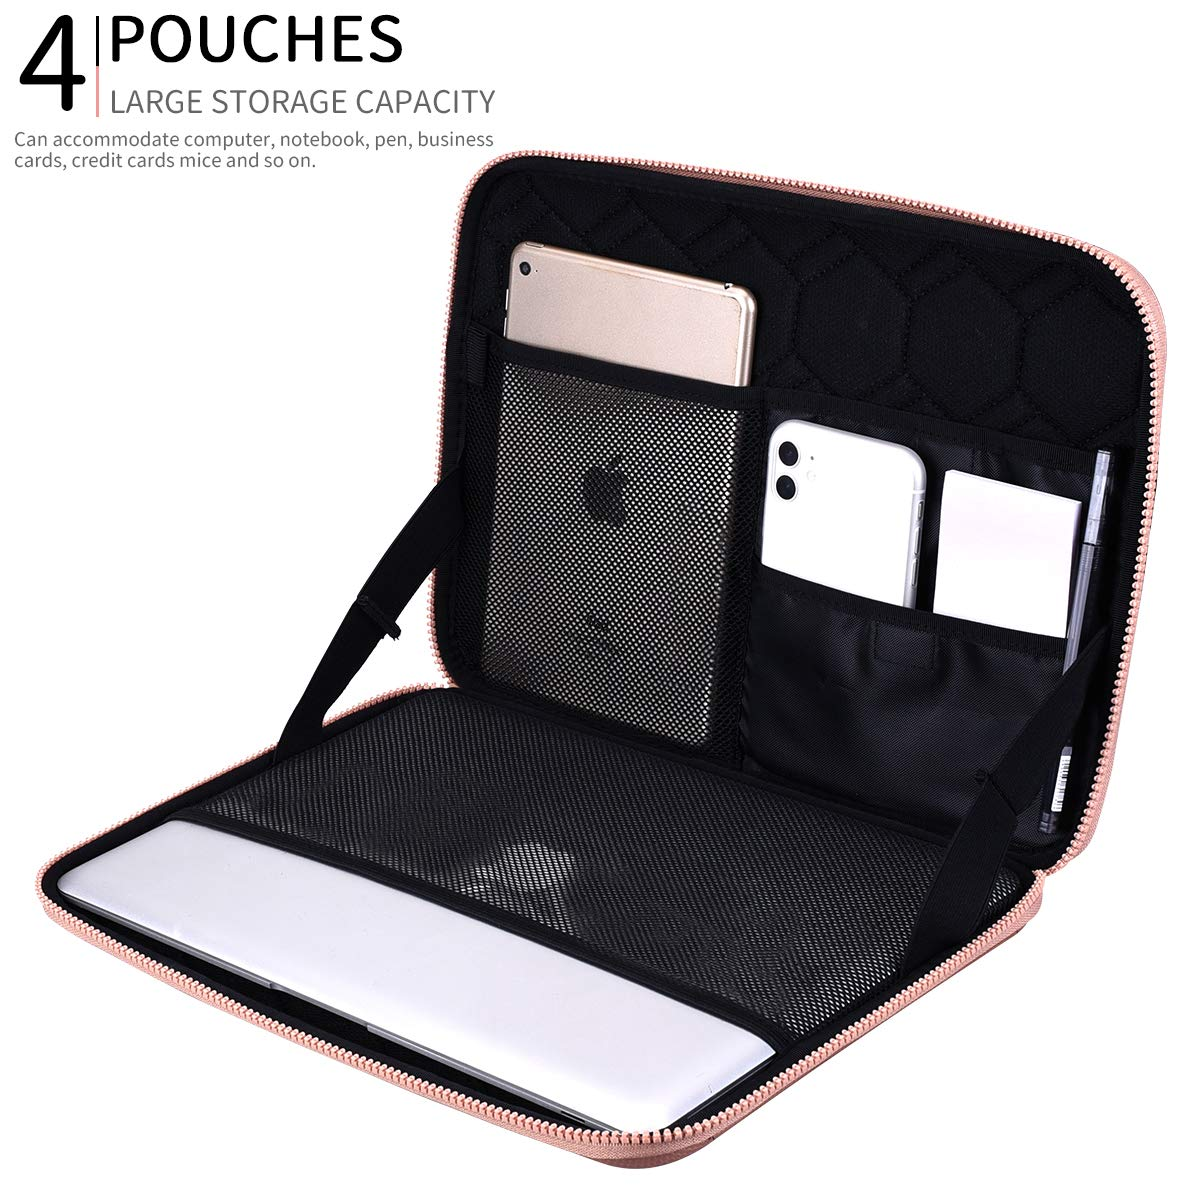 Black Microsoft Surface SUPGEAR Laptop Sleeve Case for 13-13.3 Inch Notebook Notebook Shockproof Waterproof Computer Bag Protective Compatible for MacBook Pro Chromebook MacBook Air